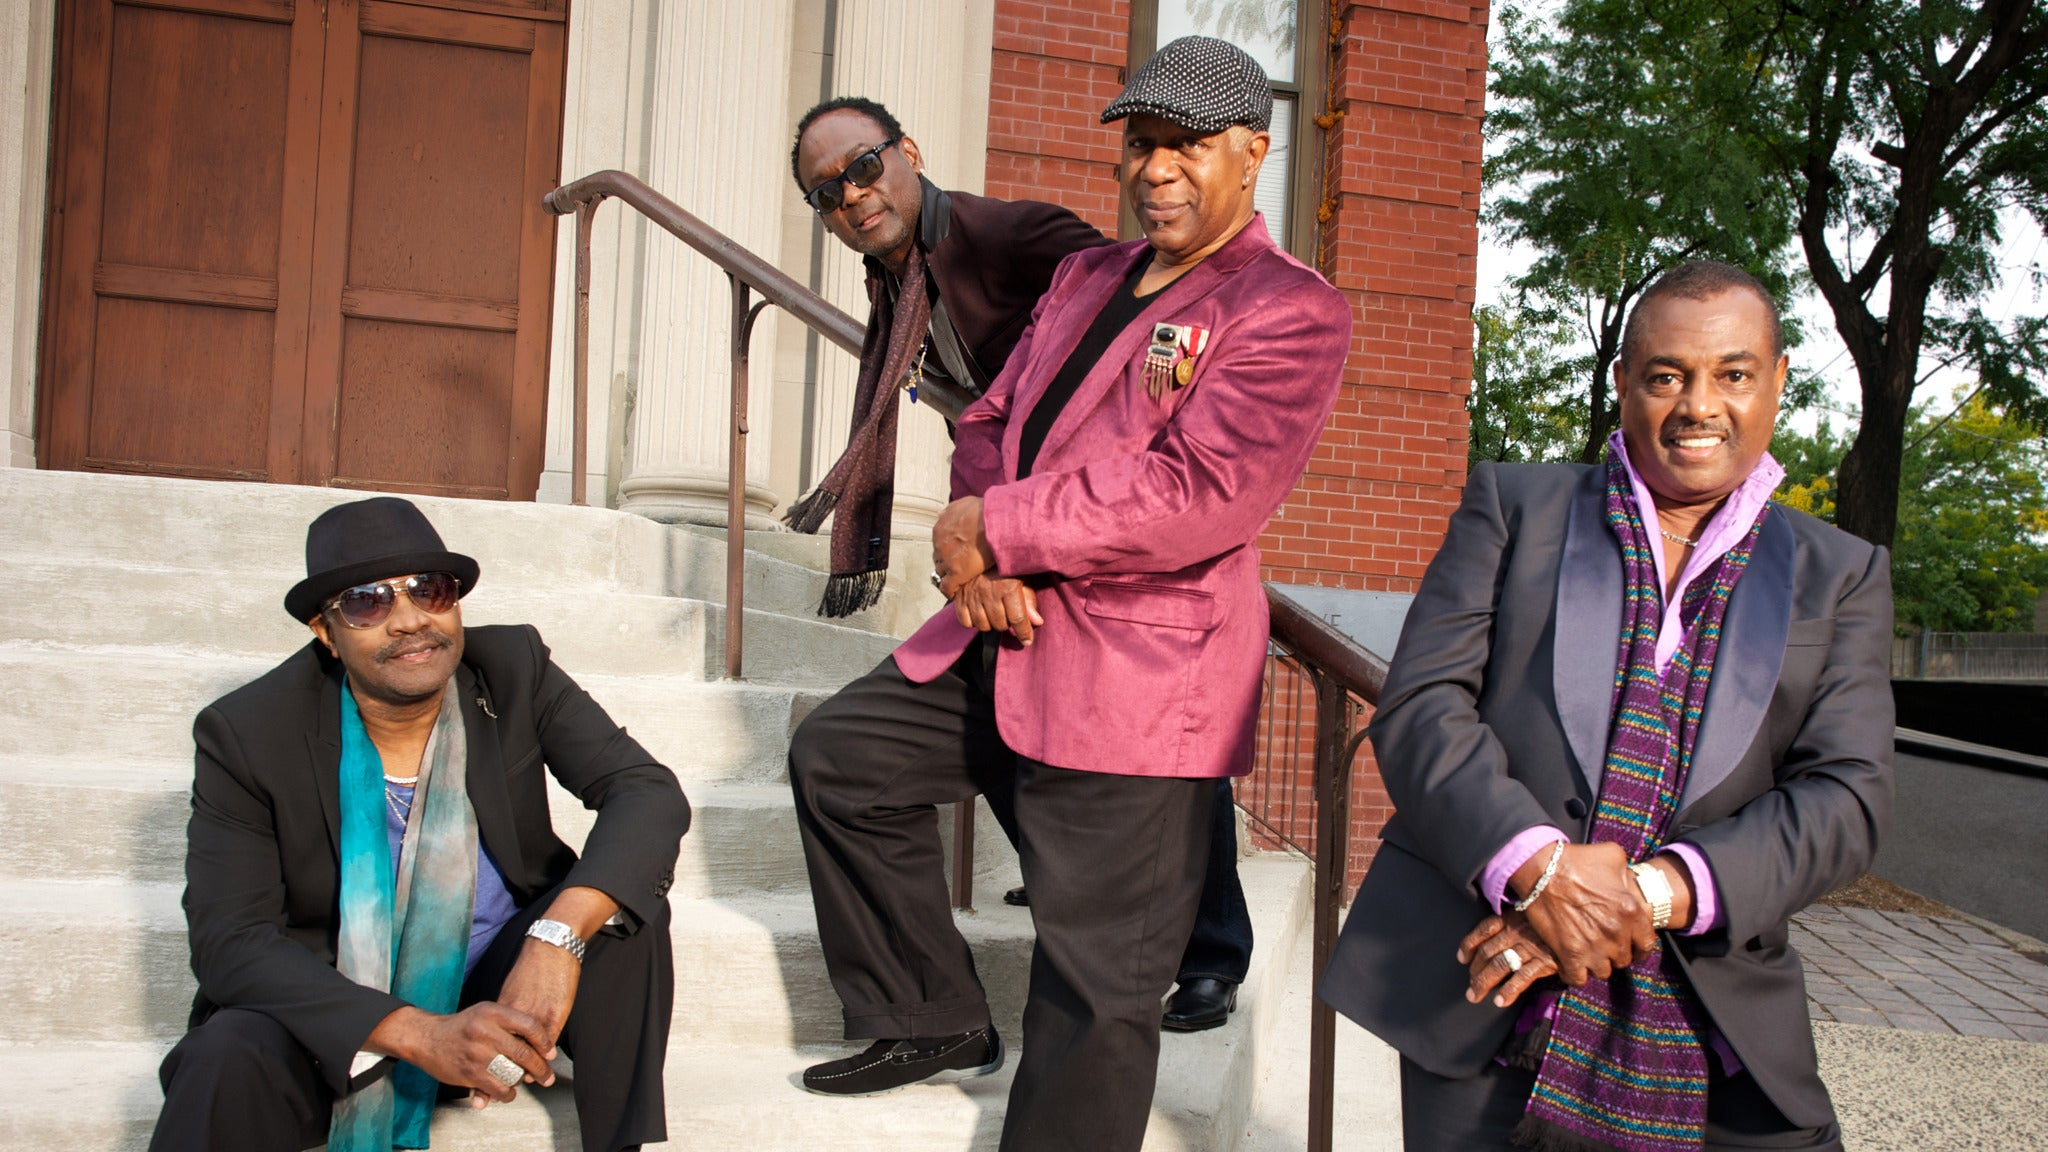 Kool & the Gang at French Lick Resort